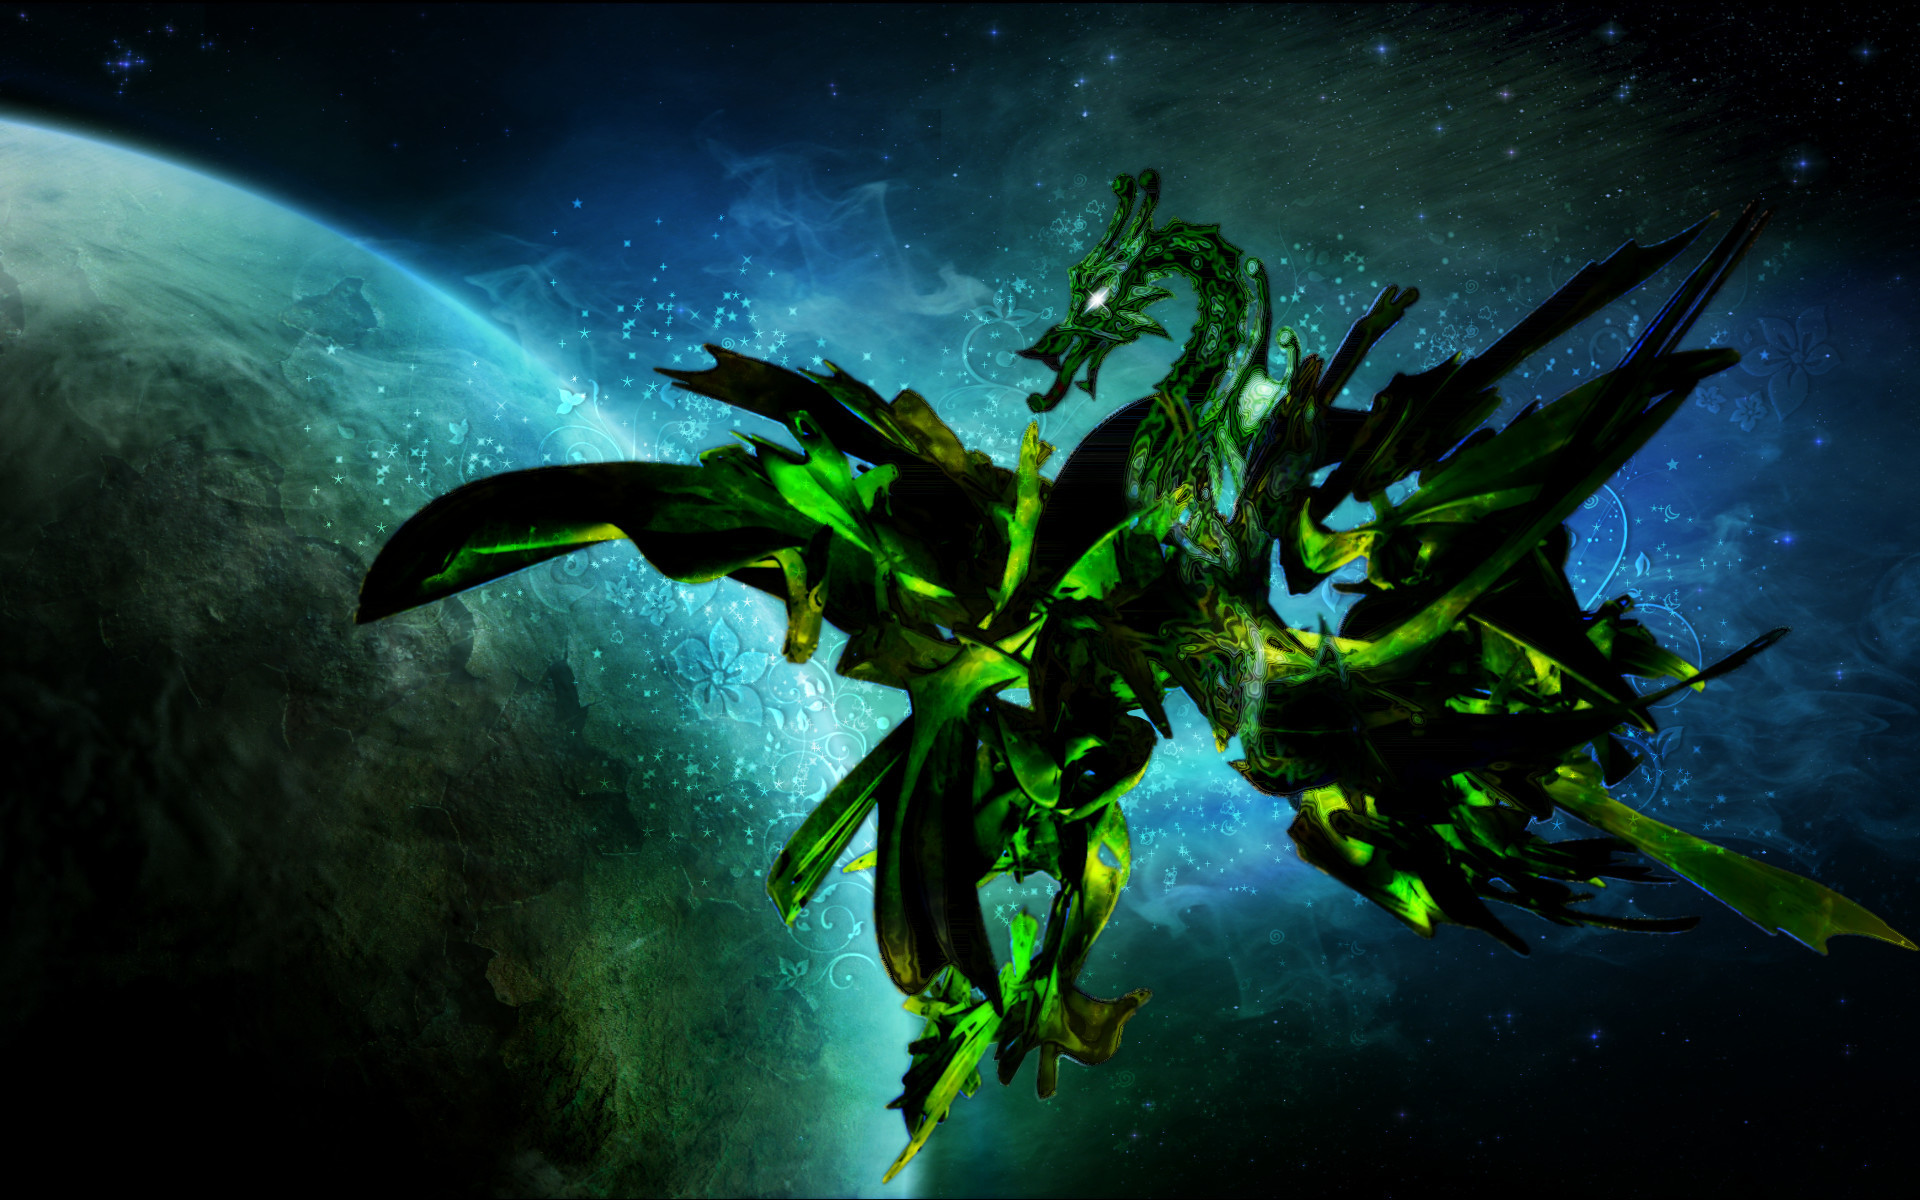 1920x1080 Images For Dragons Wallpapers 3d